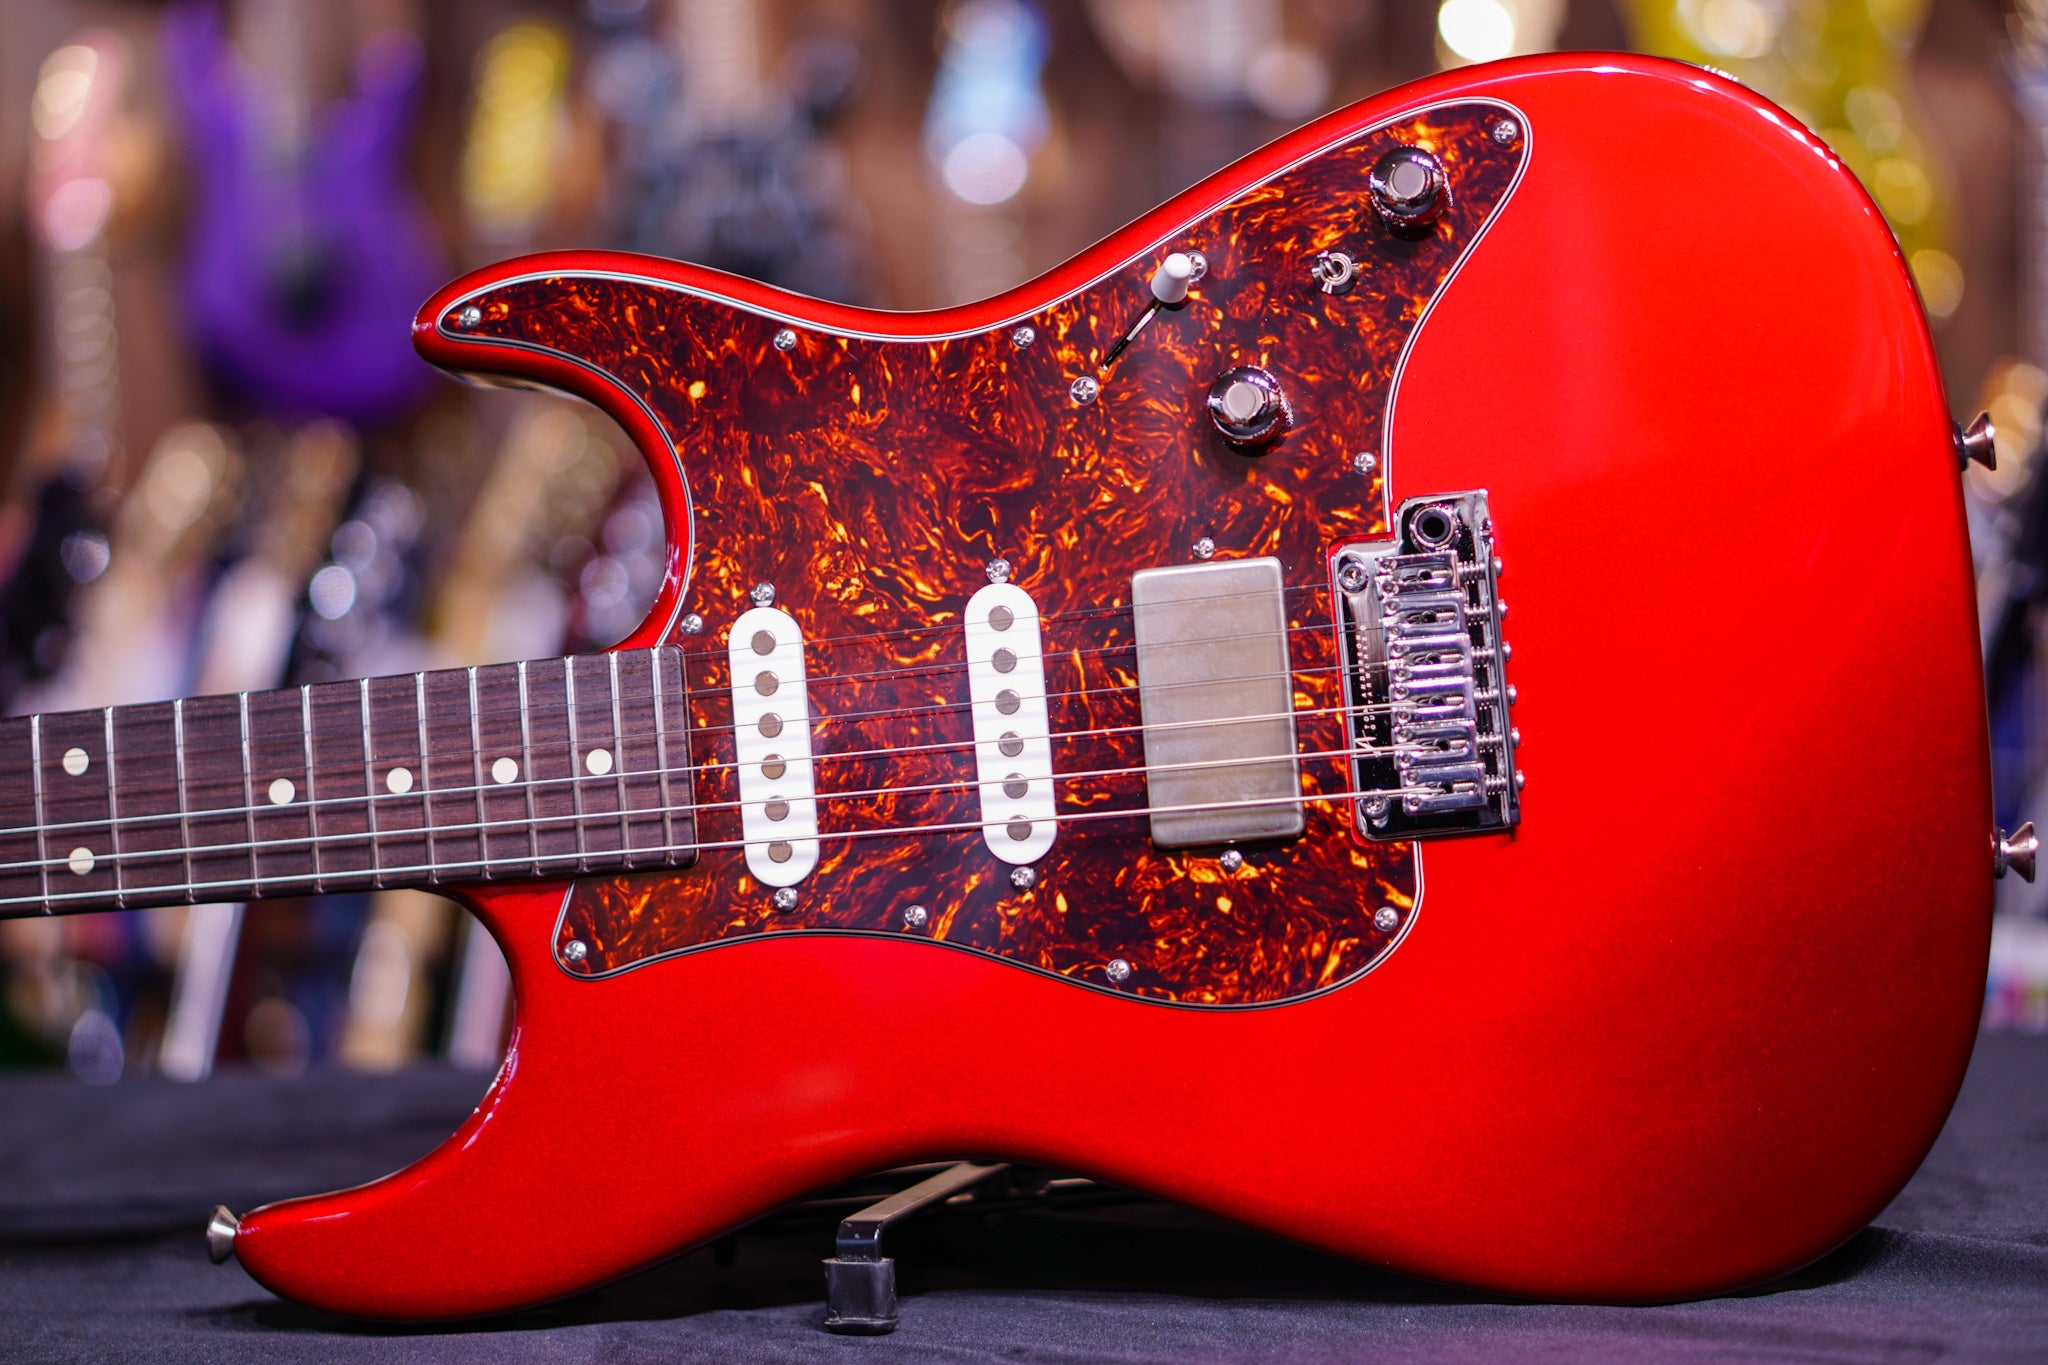 Anderson classic candy apple red G180219 Anderson - HIENDGUITAR.COM